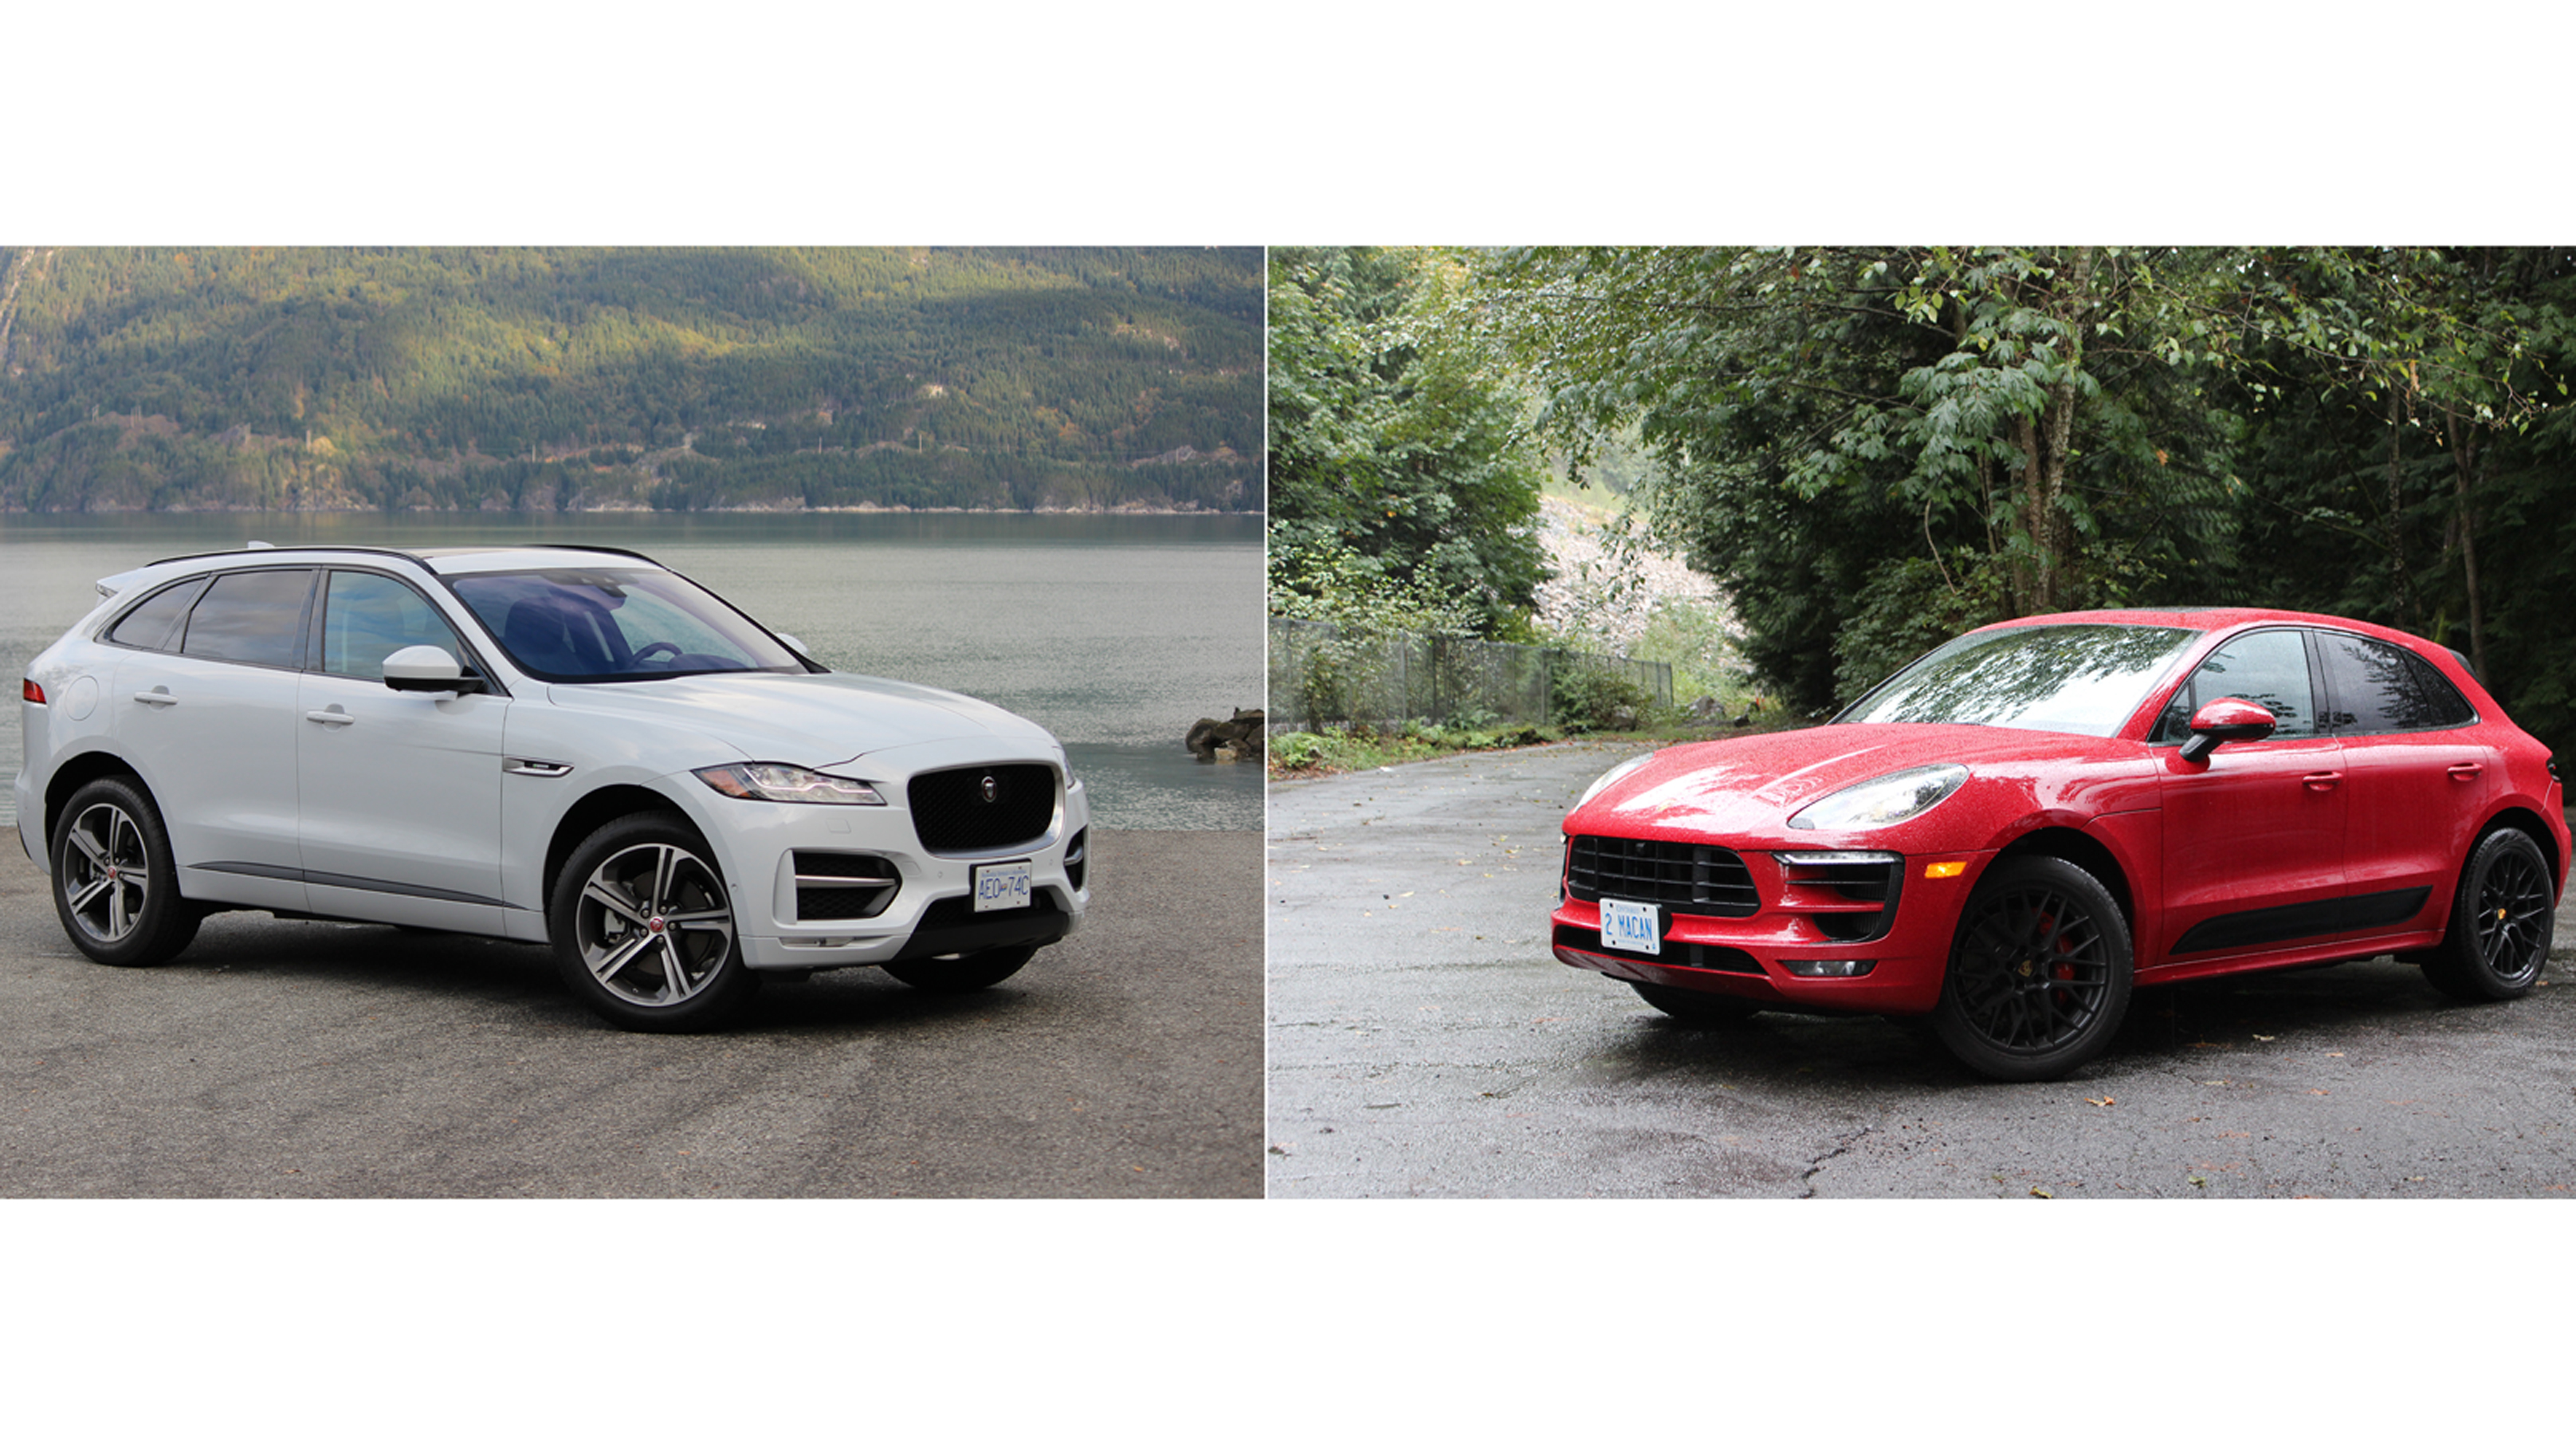 f-pace macan